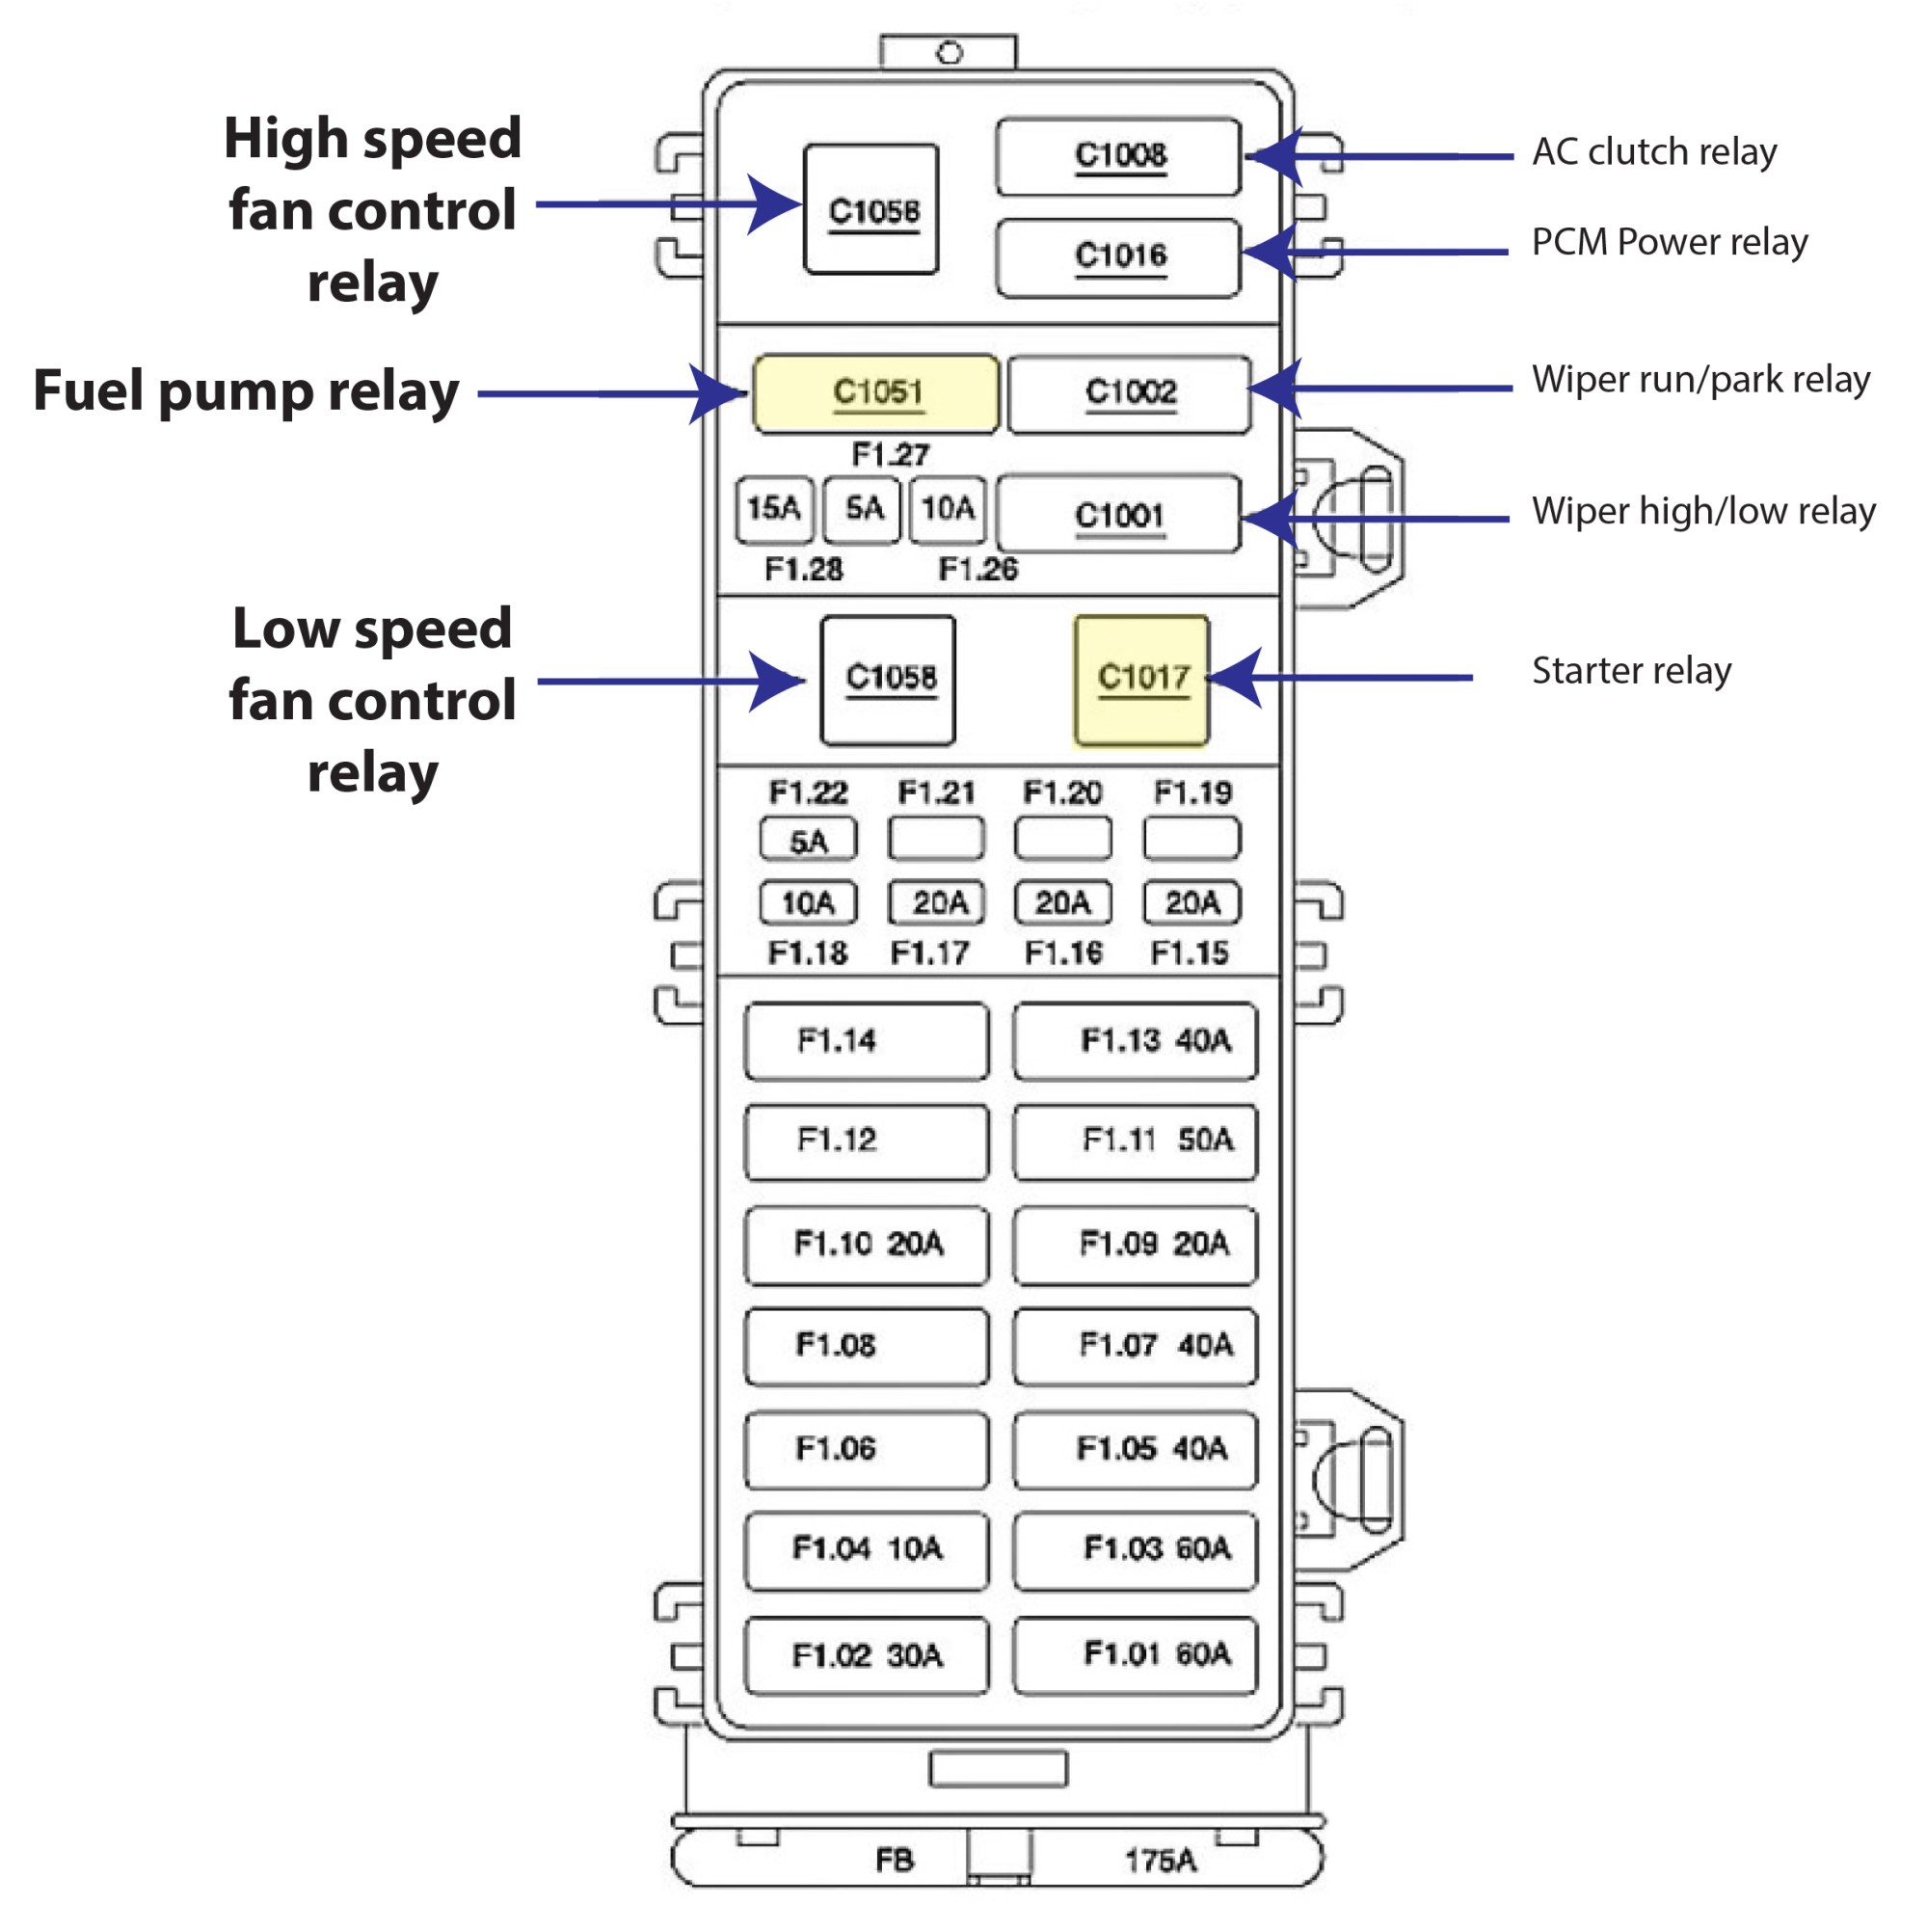 hight resolution of 06 f350 v10 fuse diagram wiring diagram sheet 06 f350 v10 fuse diagram